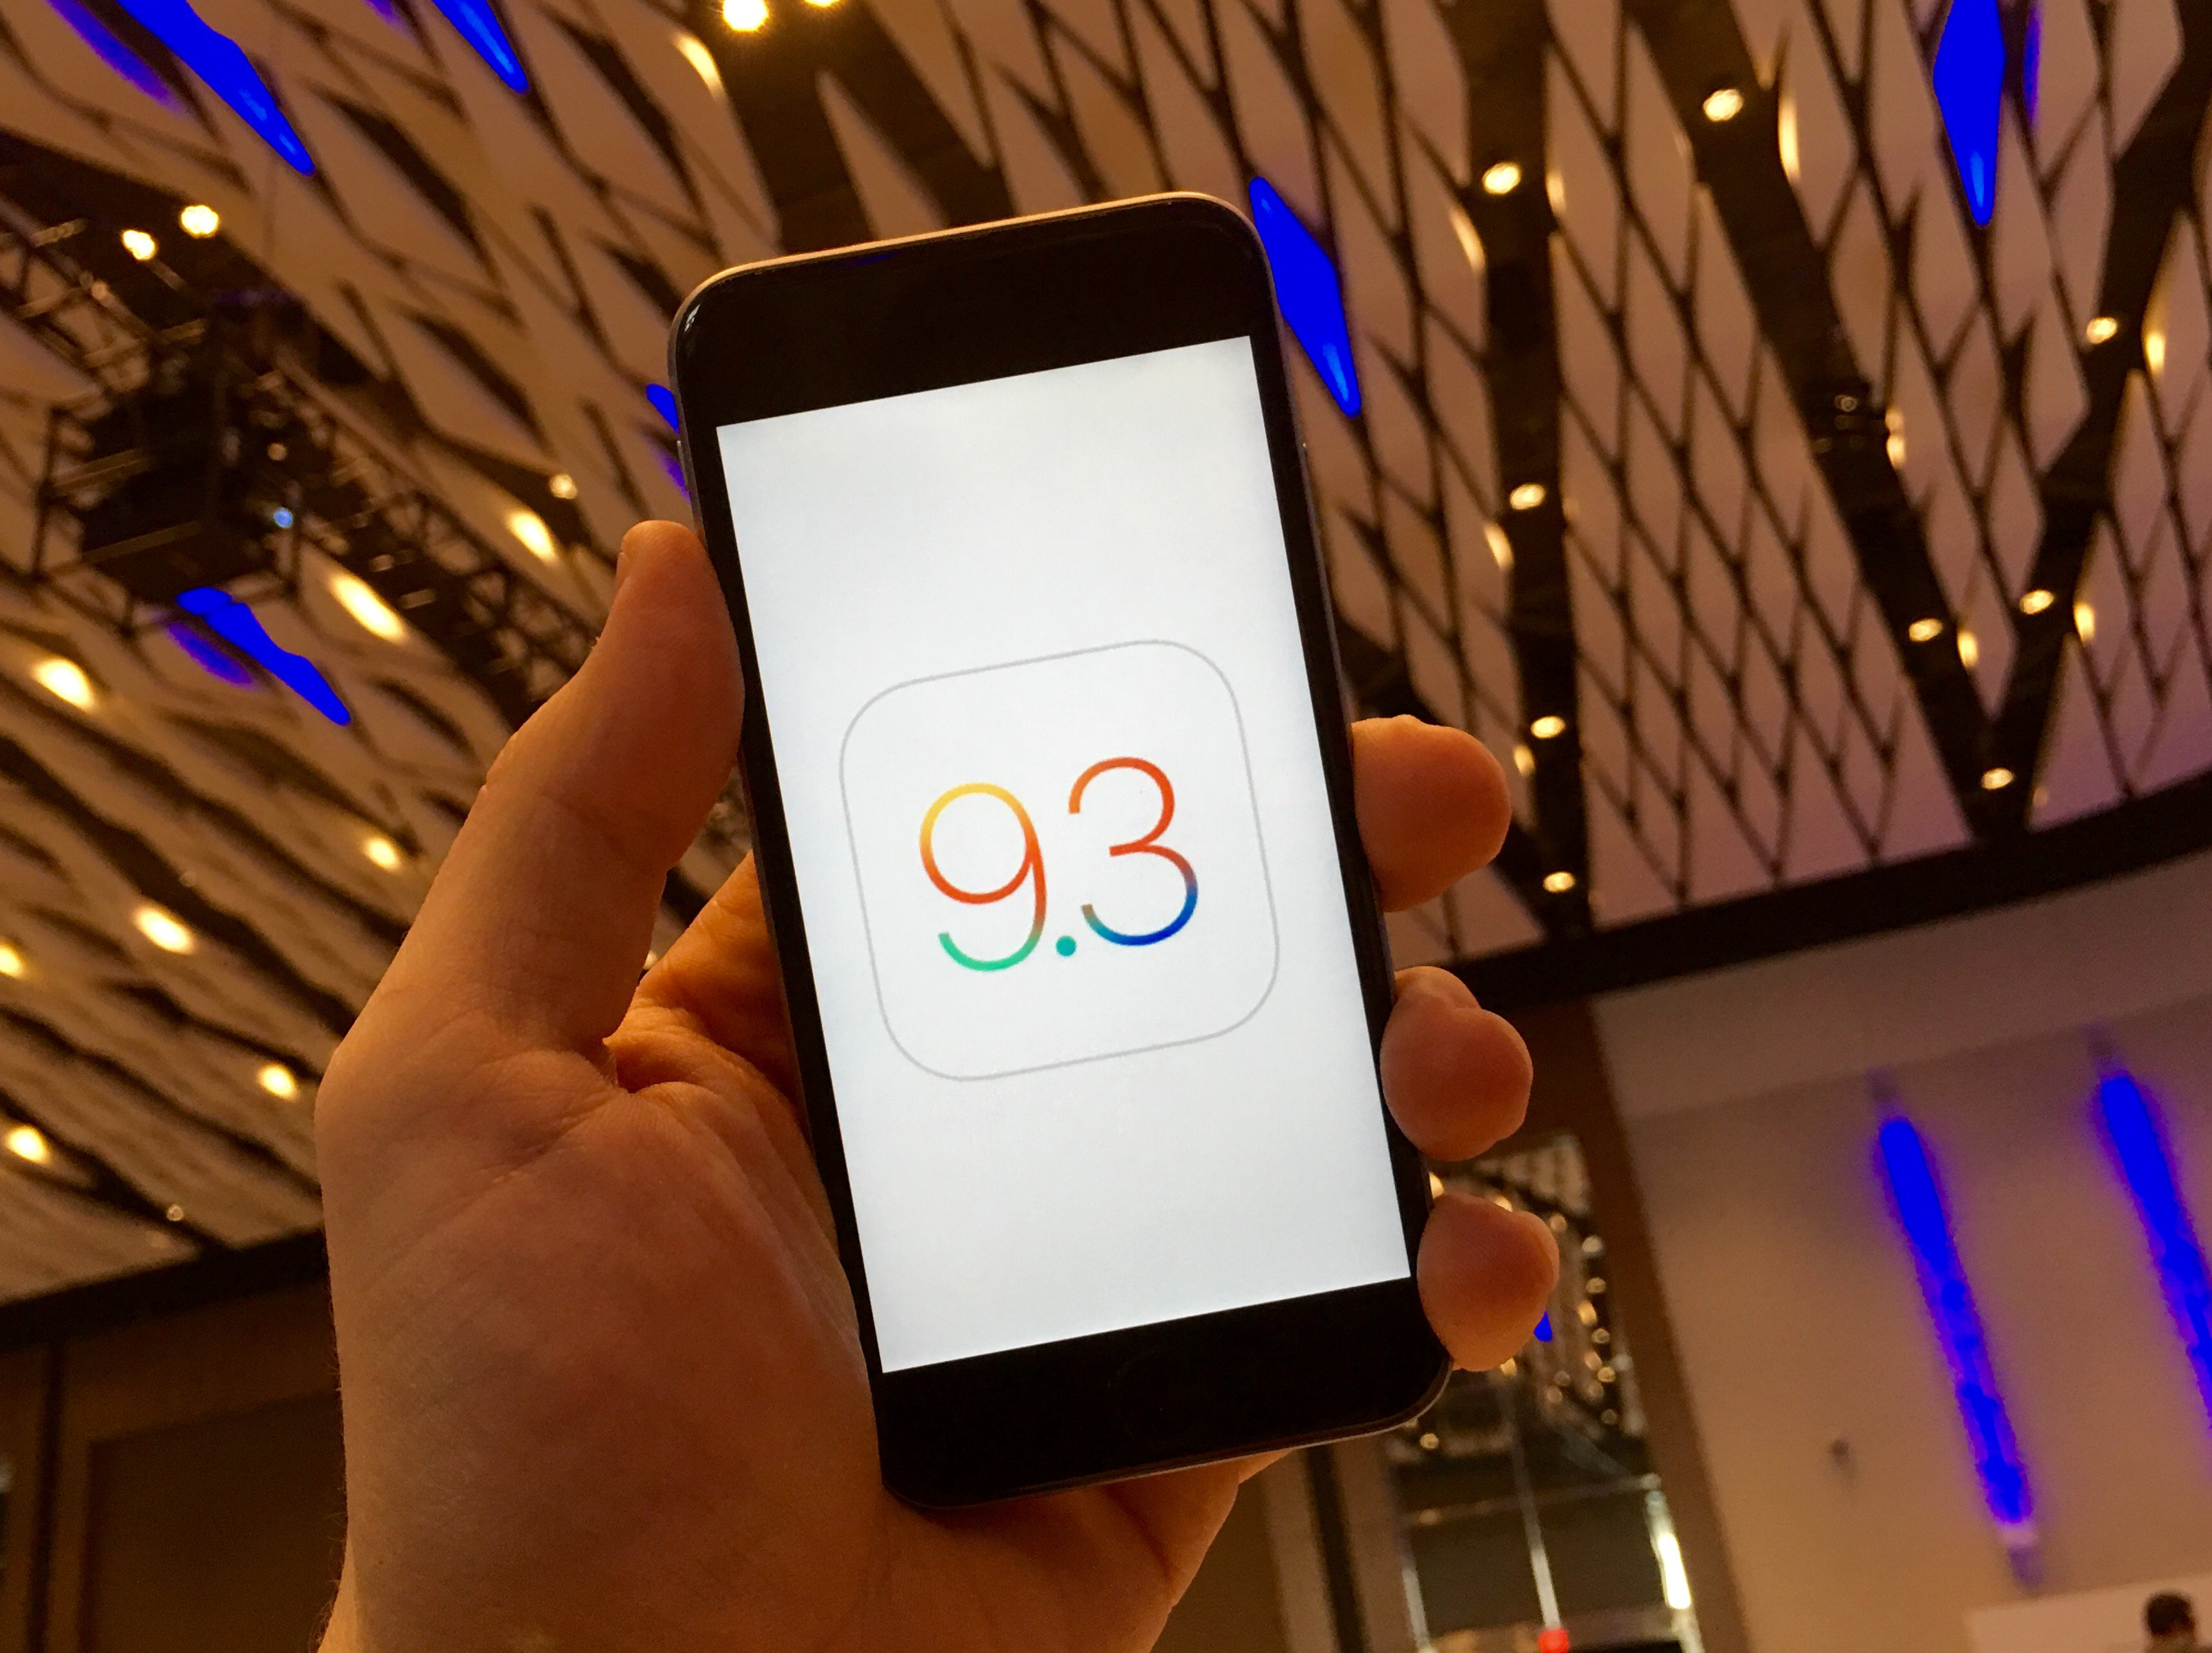 iOS 9 3 Release Date & Time: 5 Things to Expect & 4 Not To